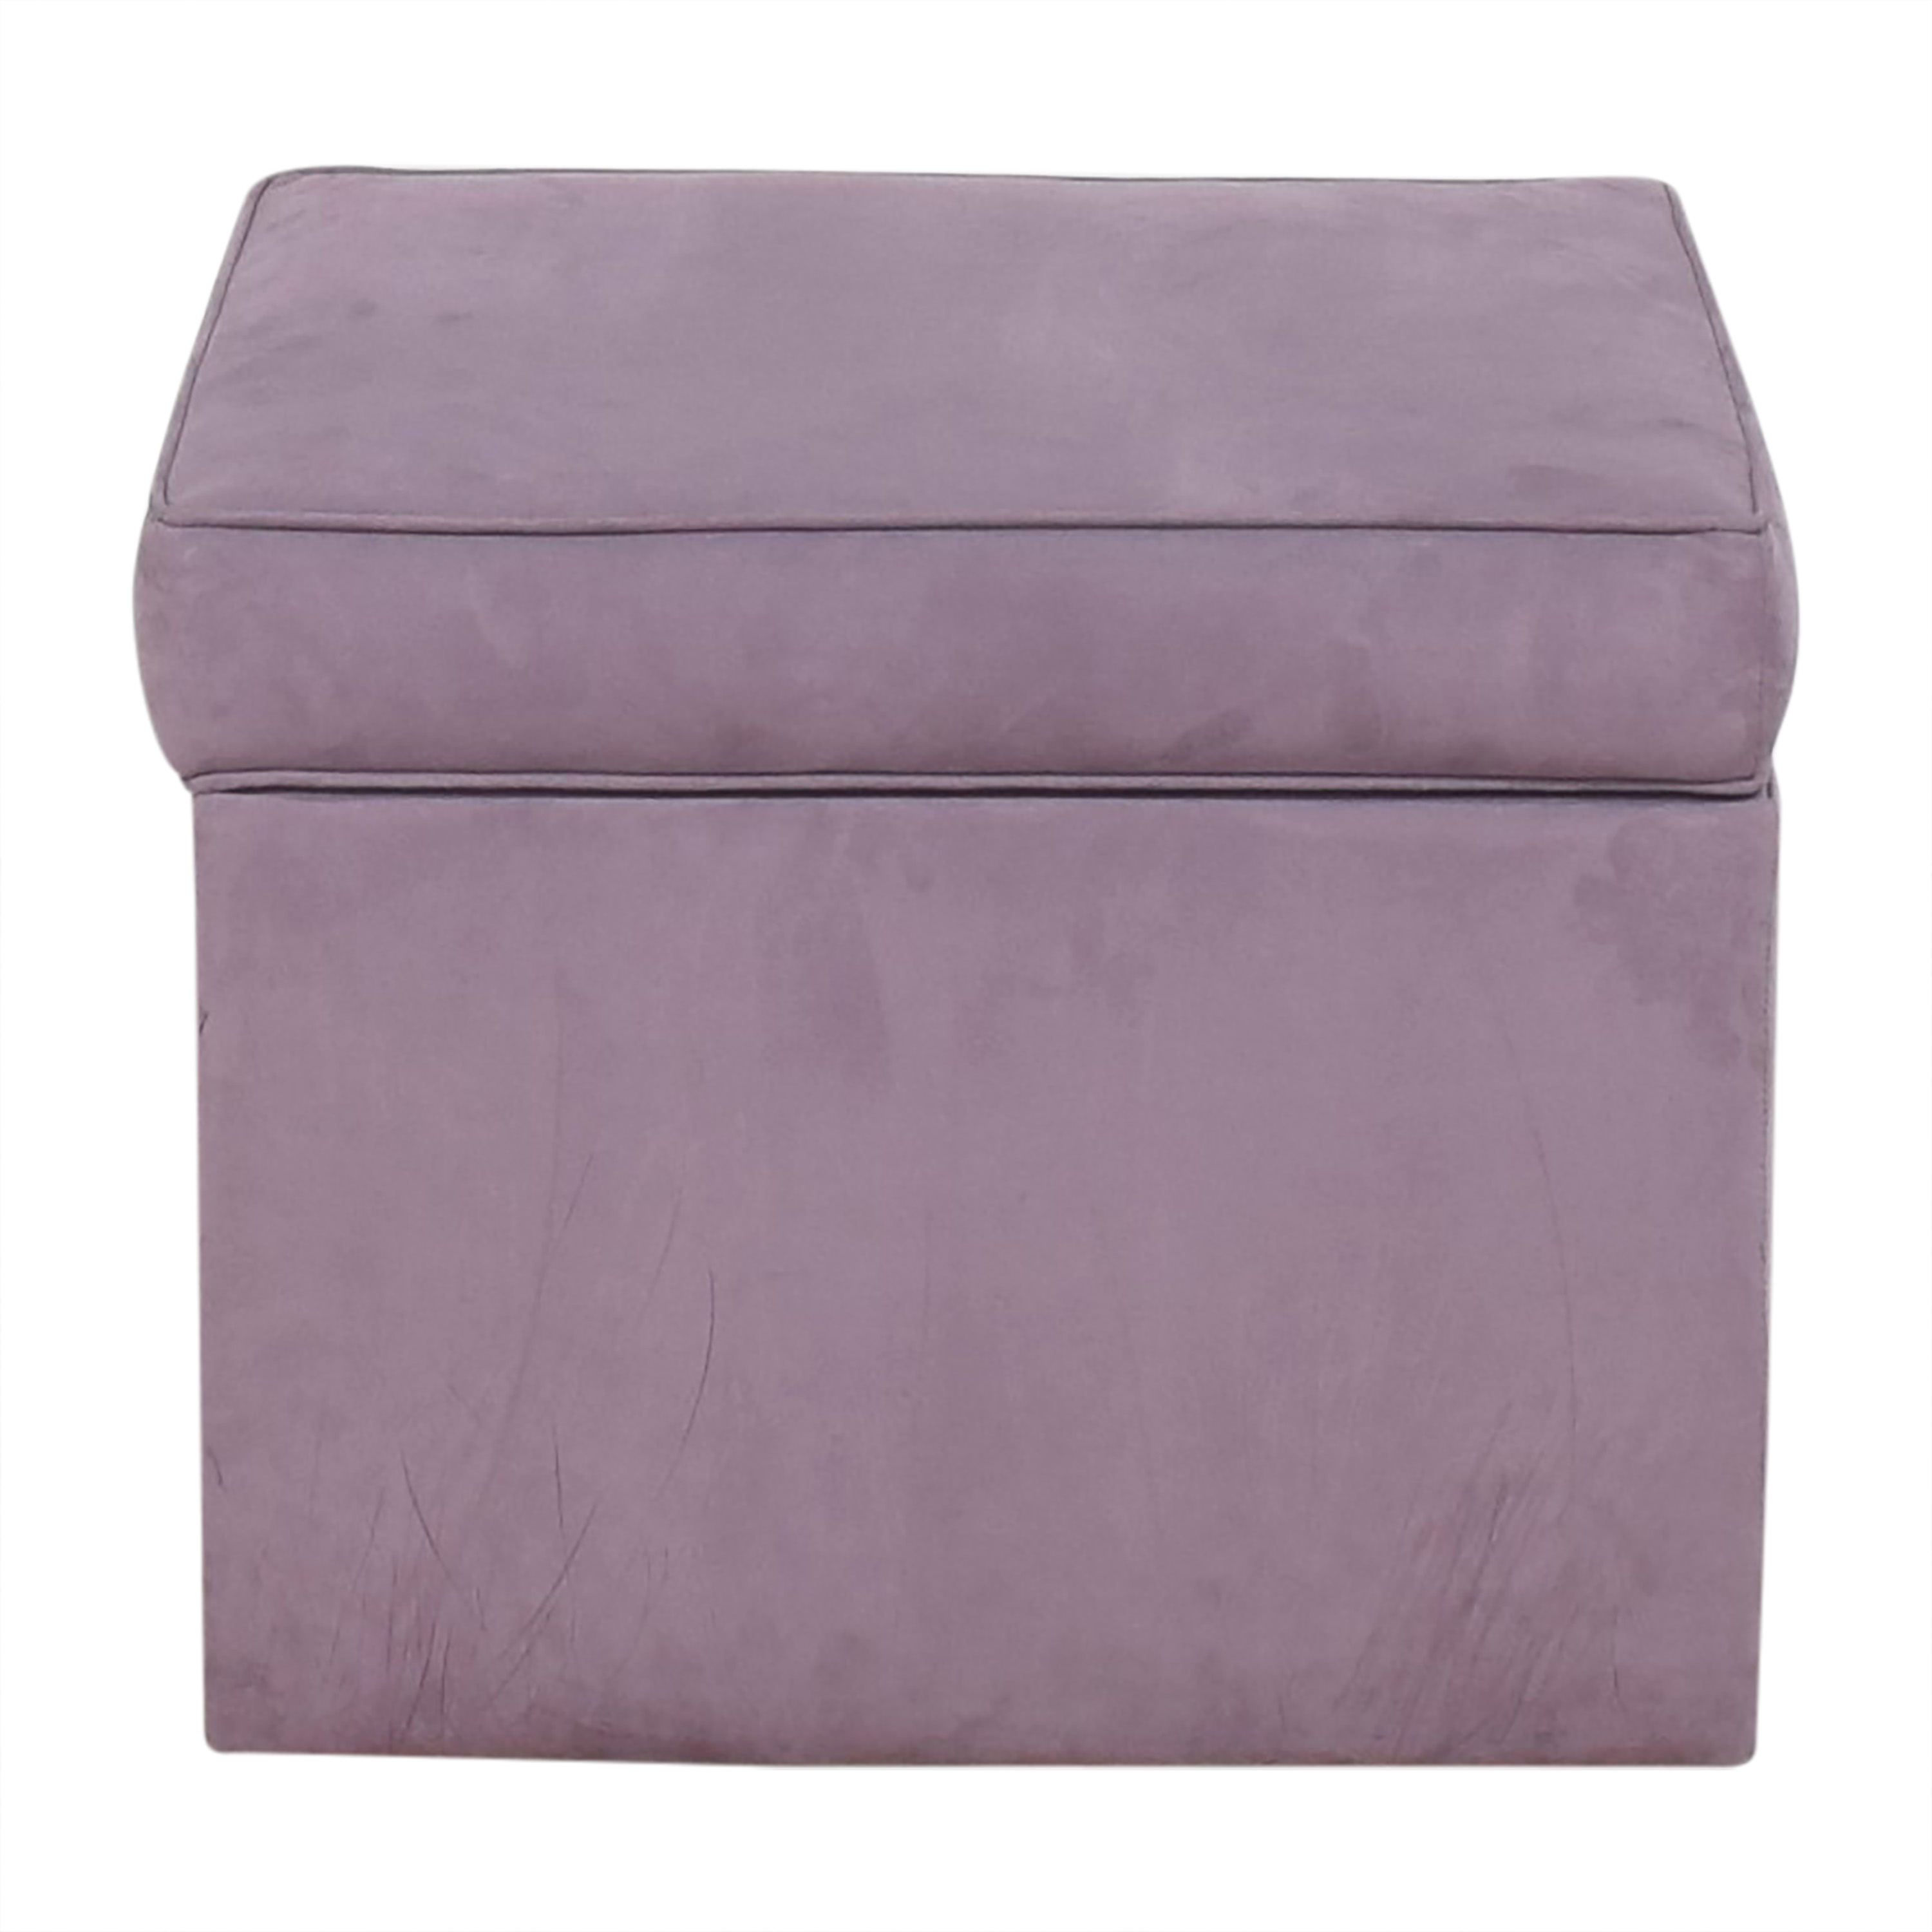 Cox Manufacturing Cox Square Storage Ottoman purple